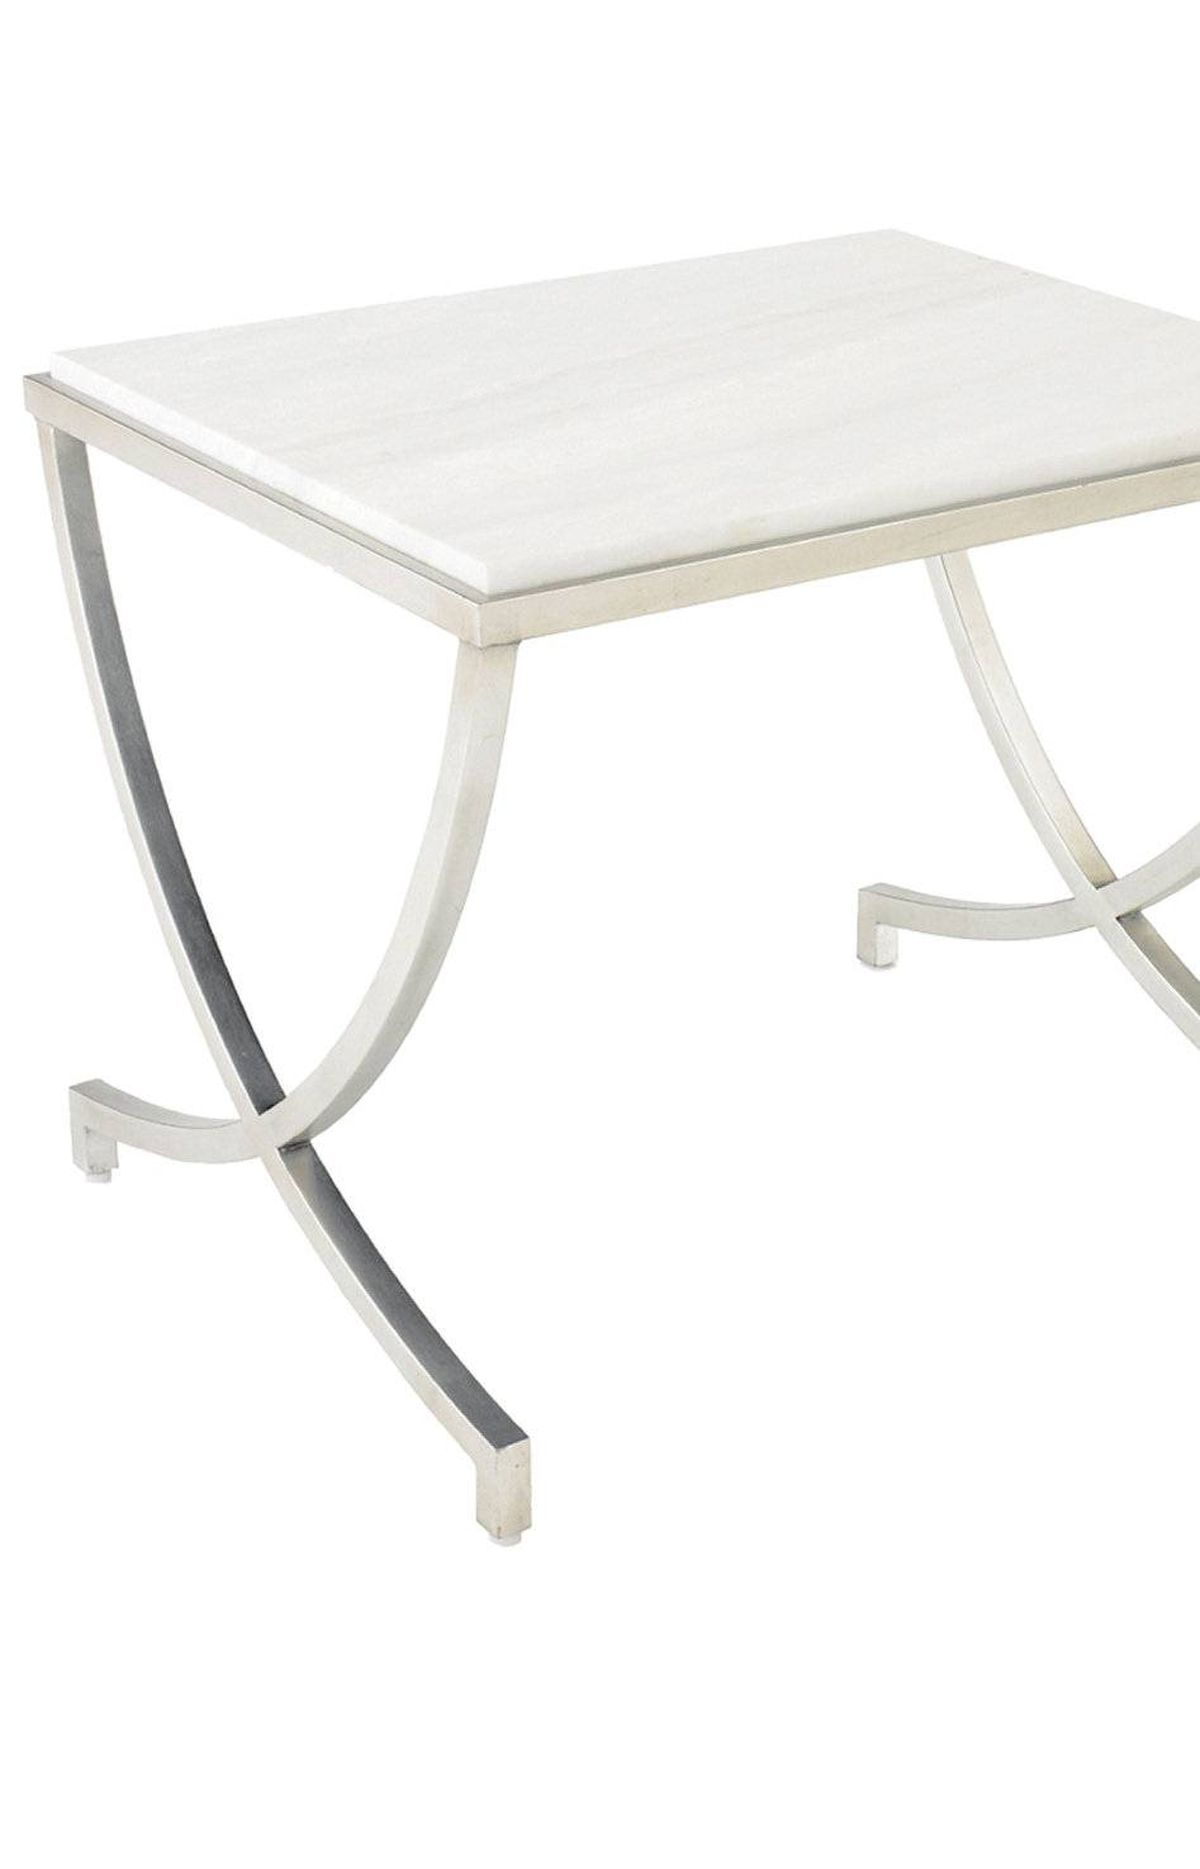 Silver leaf and marble veining add depth to this elegant side table. Silver Leaf Havaland table, $780 through www.dwell.com.